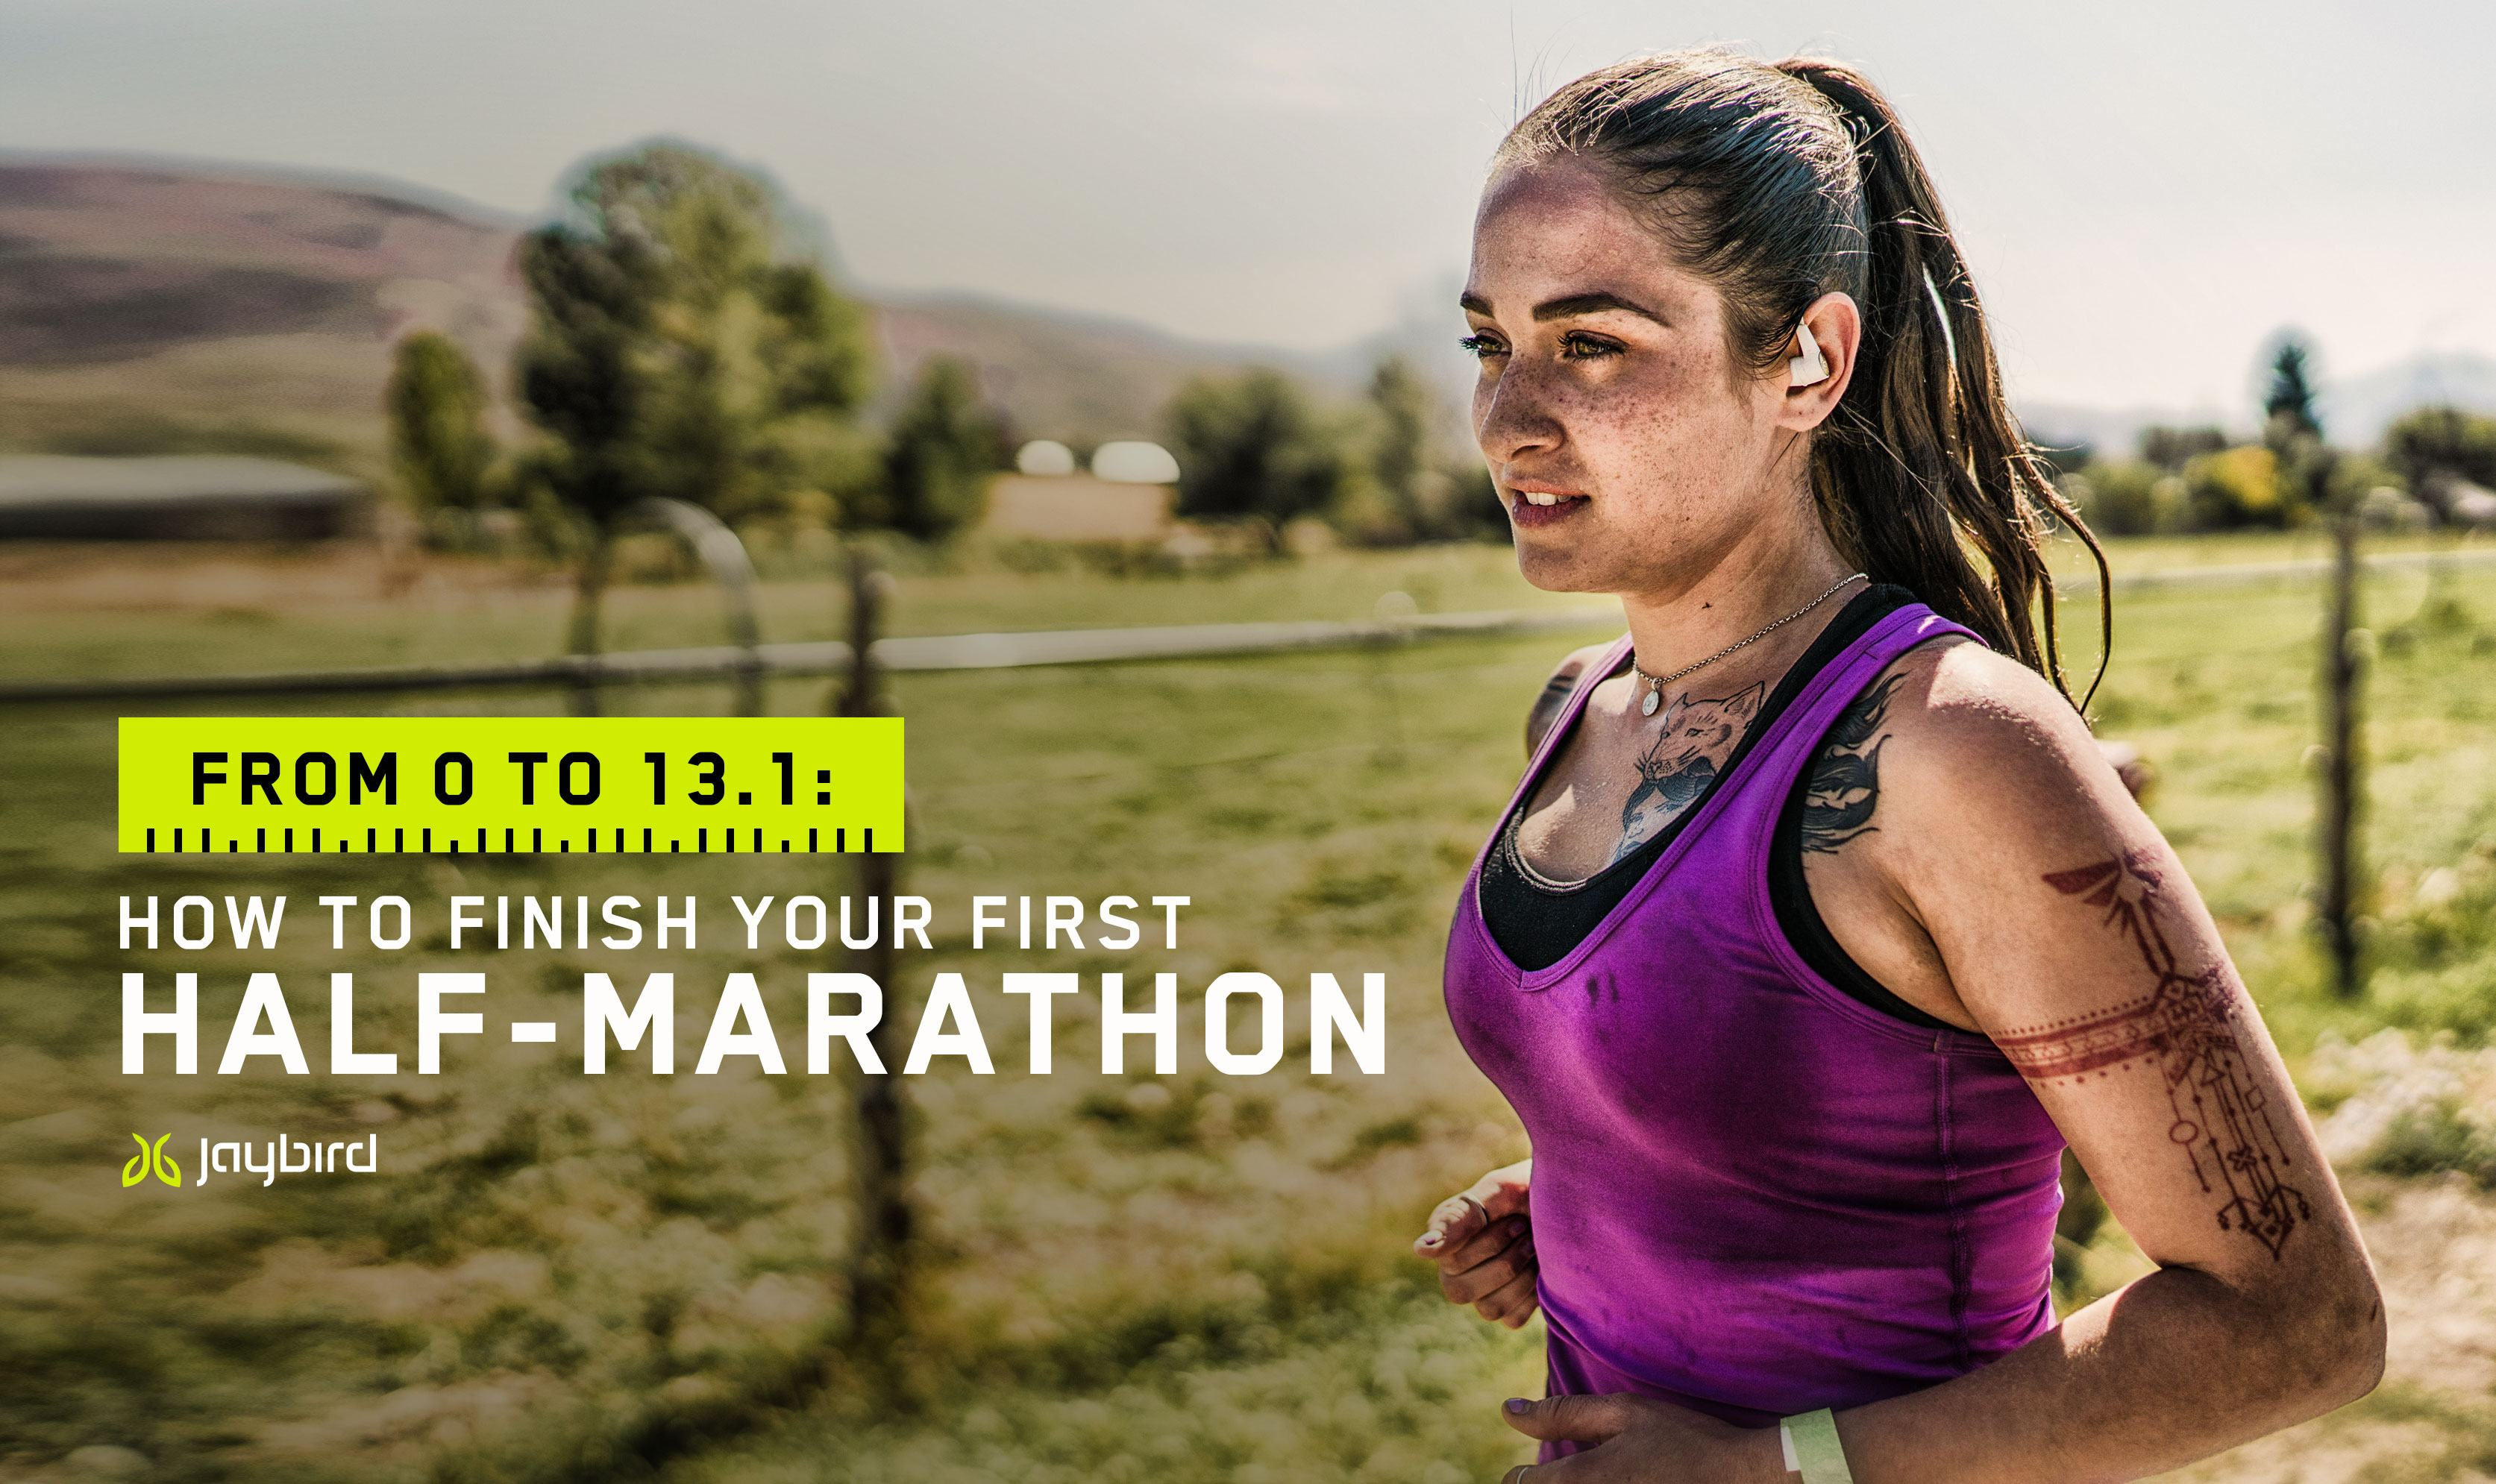 From 0 to 13.1: How to Finish Your First Half-Marathon